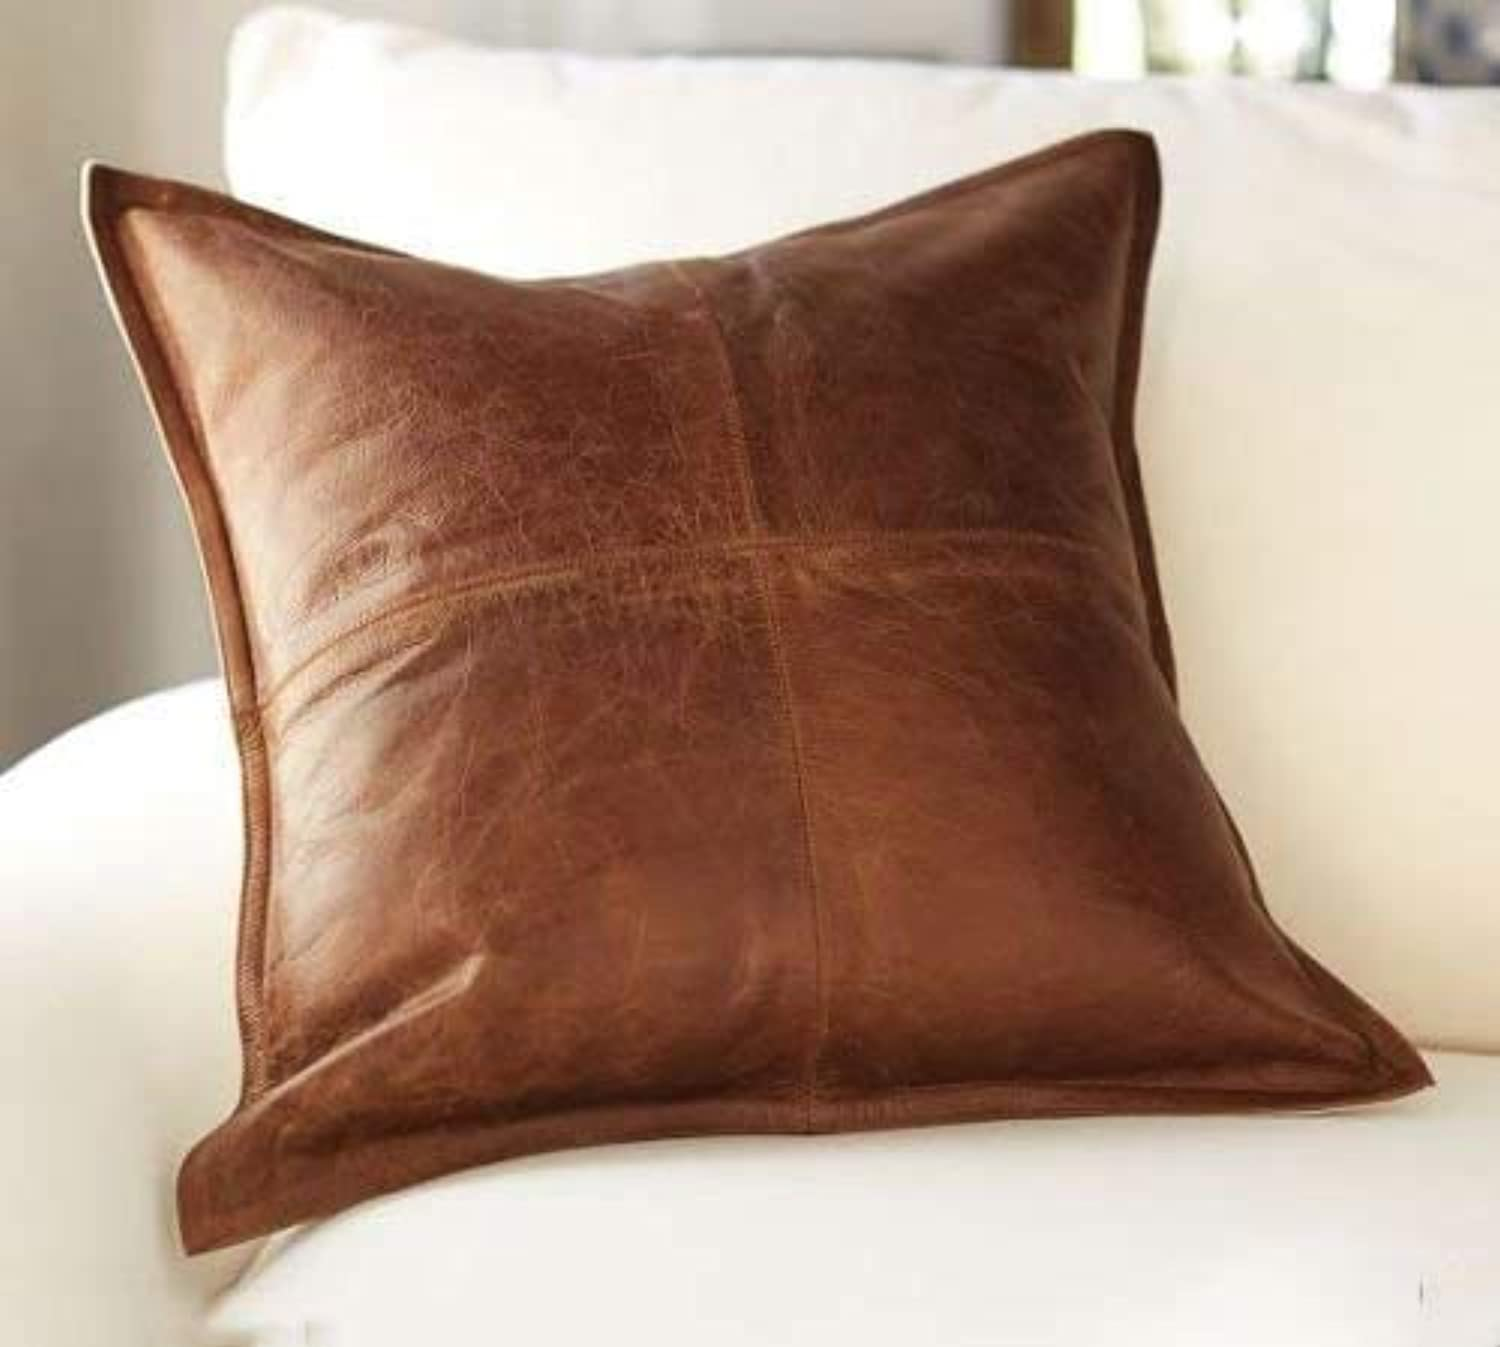 Prim Leather 100% Lambskin Leather Pillow Cover - Sofa Cushion Case - Decorative Throw Covers for Living Room & Bedroom - Box Tan Antique - 20 x 20 Inches Pack of 1